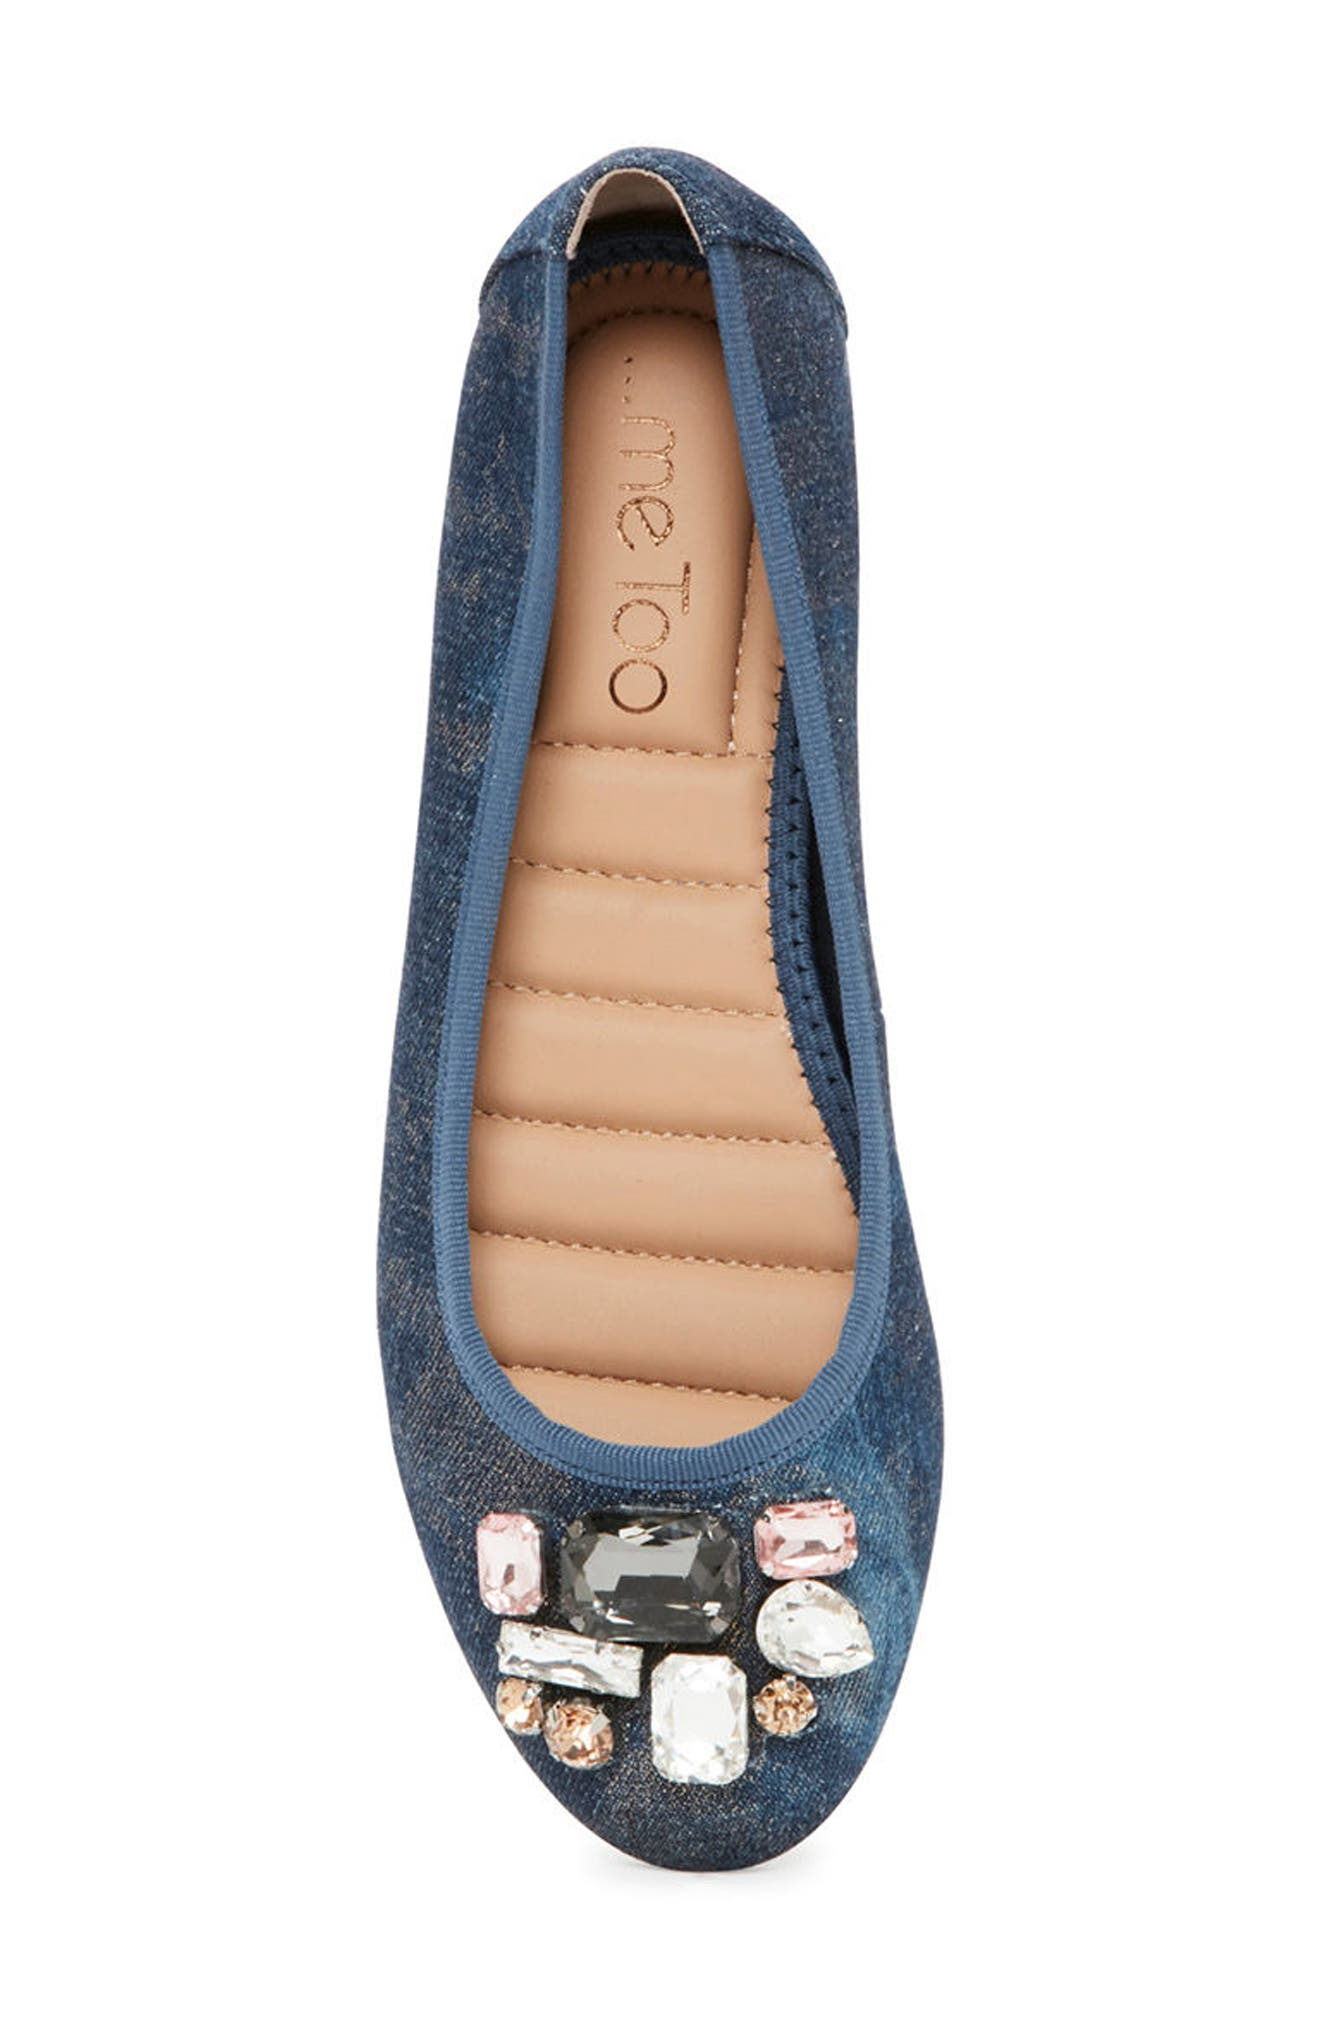 Sapphire Crystal Embellished Flat,                             Alternate thumbnail 5, color,                             Blue Champagne Denim Fabric